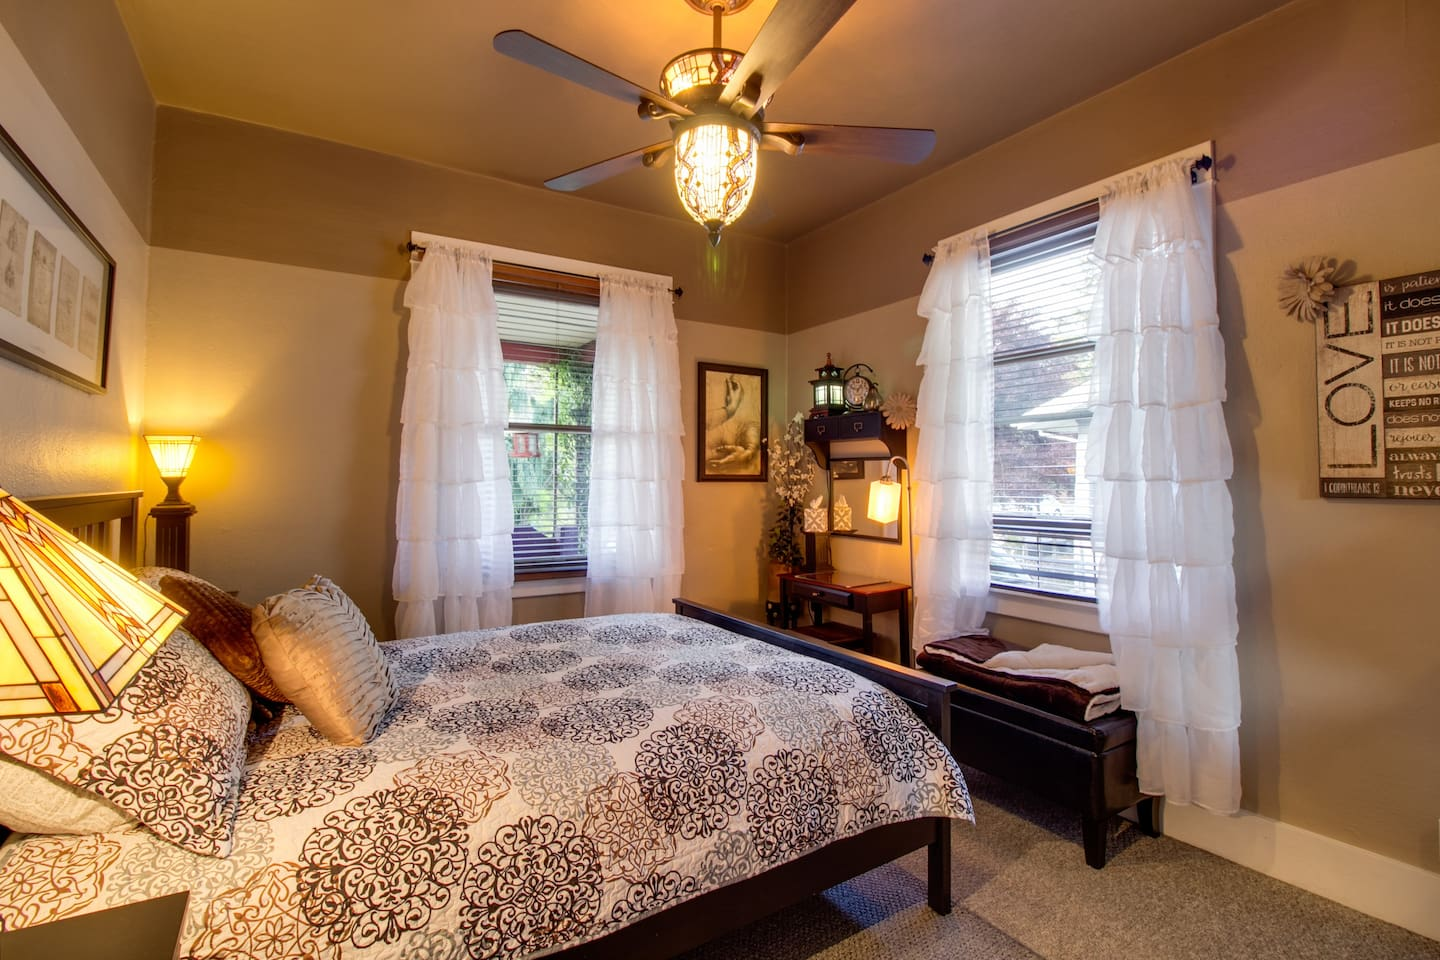 A beautiful room filled with light and mission style decor.  A wonderful queen bed with comfort bedtopper.  Northern and eastern light fills the room.  This is our one guest room located on the main floor just steps away from the shared bath.